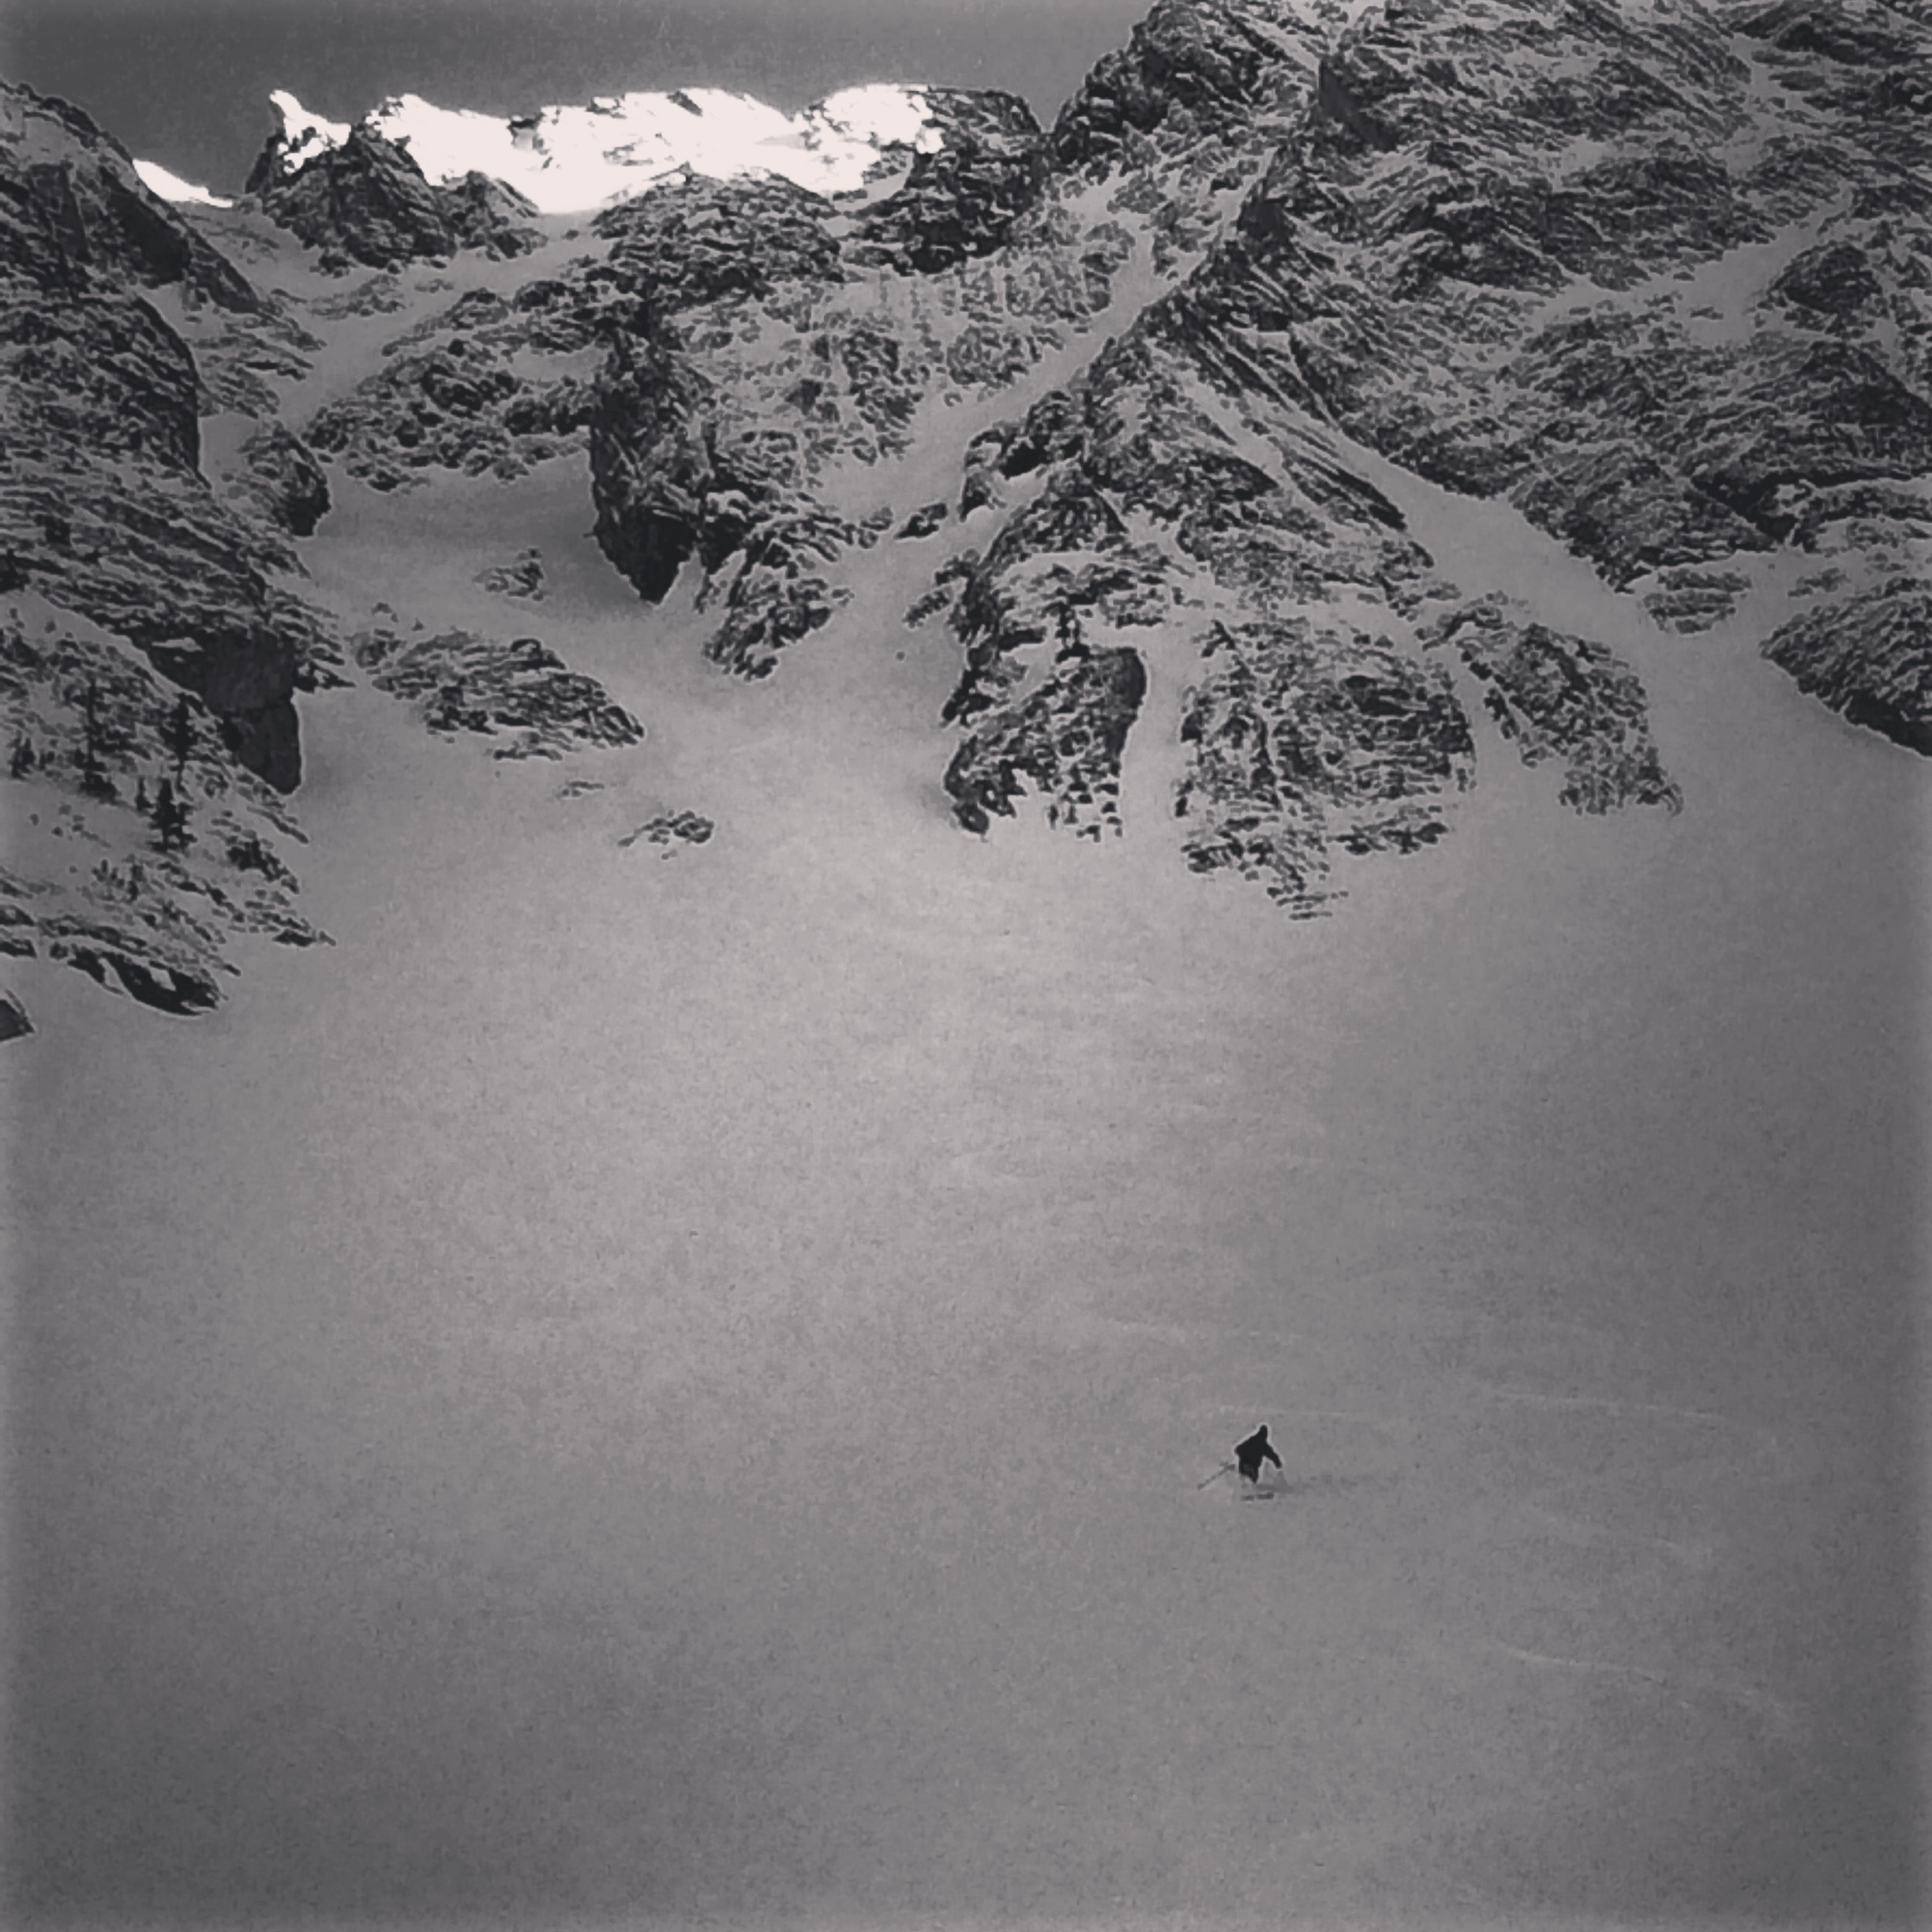 Skiing the lower fans below the north couloir